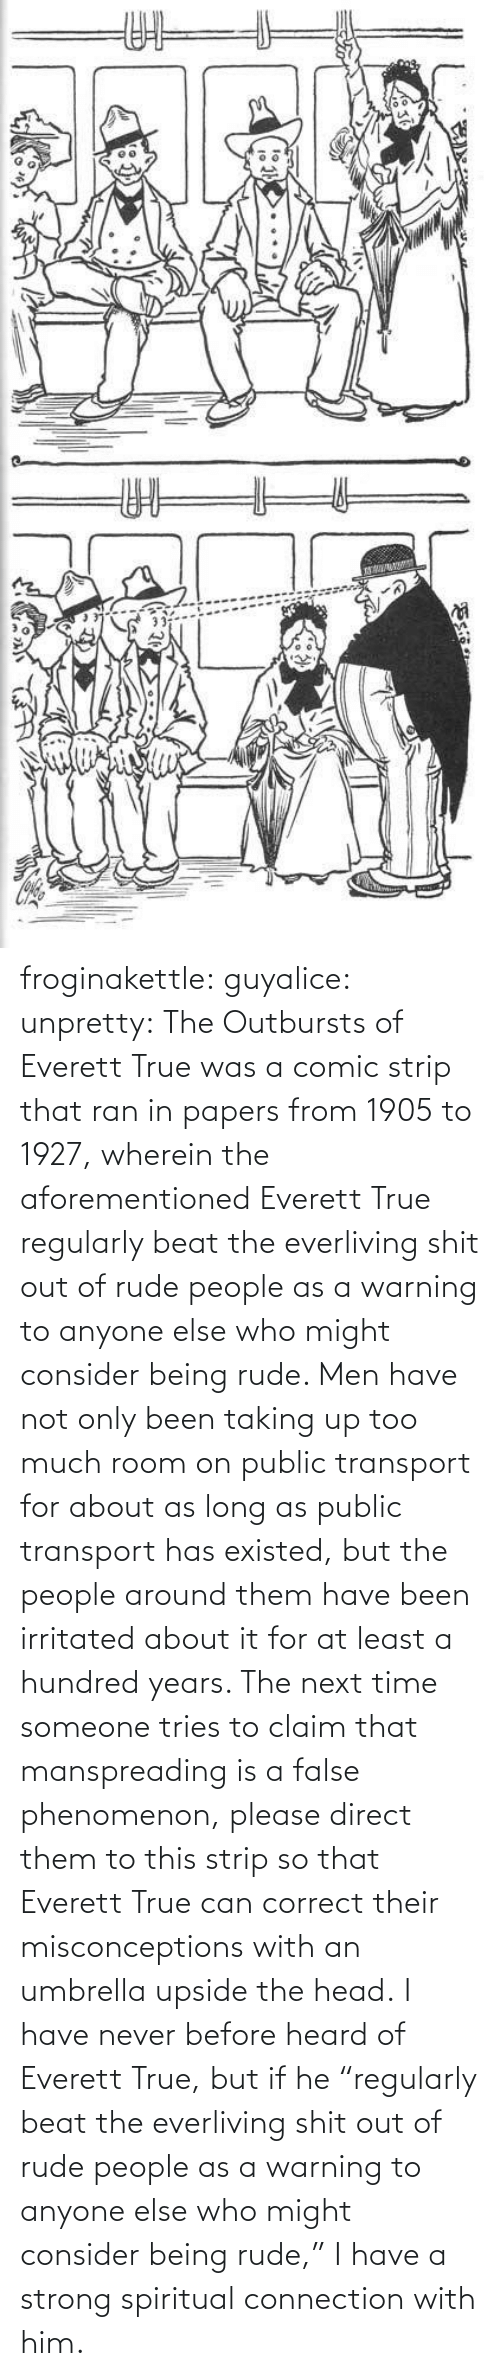 "Connection: ఇ  క froginakettle:  guyalice:  unpretty:  The Outbursts of Everett True was a comic strip that ran in papers from 1905 to 1927, wherein the aforementioned Everett True regularly beat the everliving shit out of rude people as a warning to anyone else who might consider being rude. Men have not only been taking up too much room on public transport for about as long as public transport has existed, but the people around them have been irritated about it for at least a hundred years. The next time someone tries to claim that manspreading is a false phenomenon, please direct them to this strip so that Everett True can correct their misconceptions with an umbrella upside the head.  I have never before heard of Everett True, but if he ""regularly beat the everliving shit out of rude people as a warning to anyone else who might consider being rude,"" I have a strong spiritual connection with him."